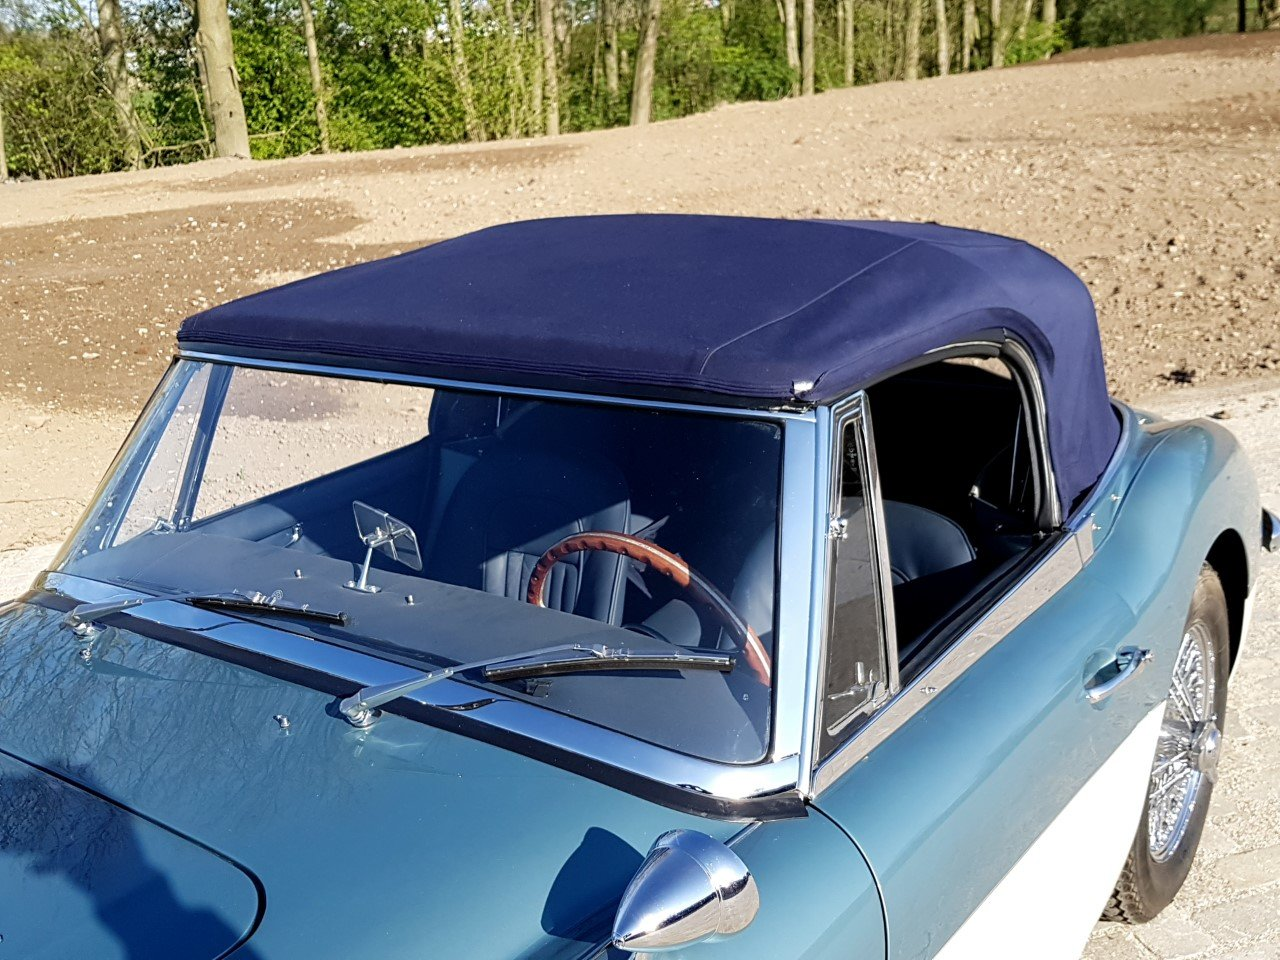 1964 Austin Healey 3000 Mark 3 convertible BJ8 (RESTORED) For Sale (picture 5 of 6)